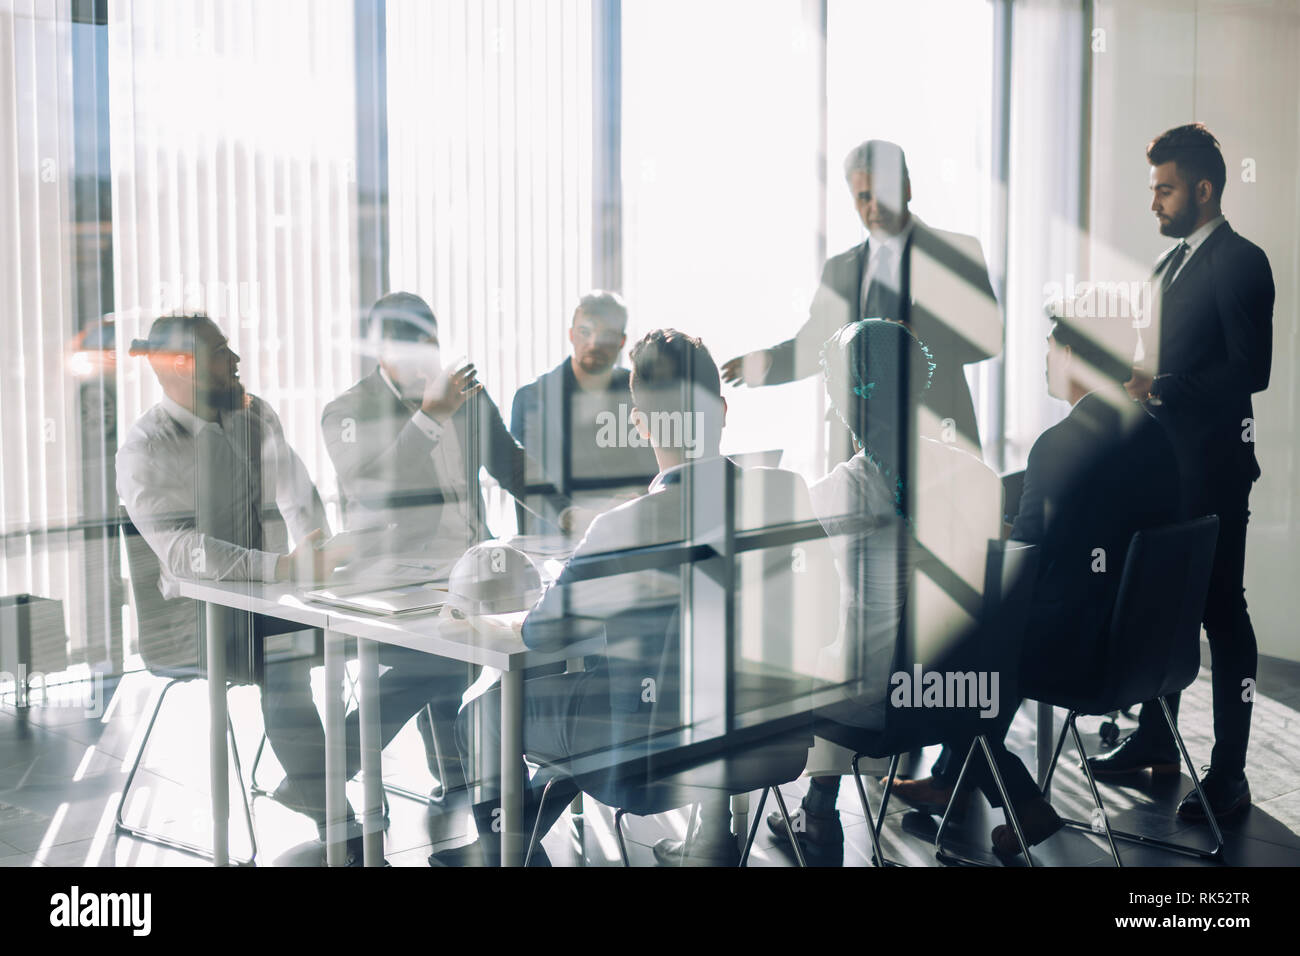 Side view of blurred silhouettes of businessmen talking in conference room, view through the transparent glass wall - Stock Image